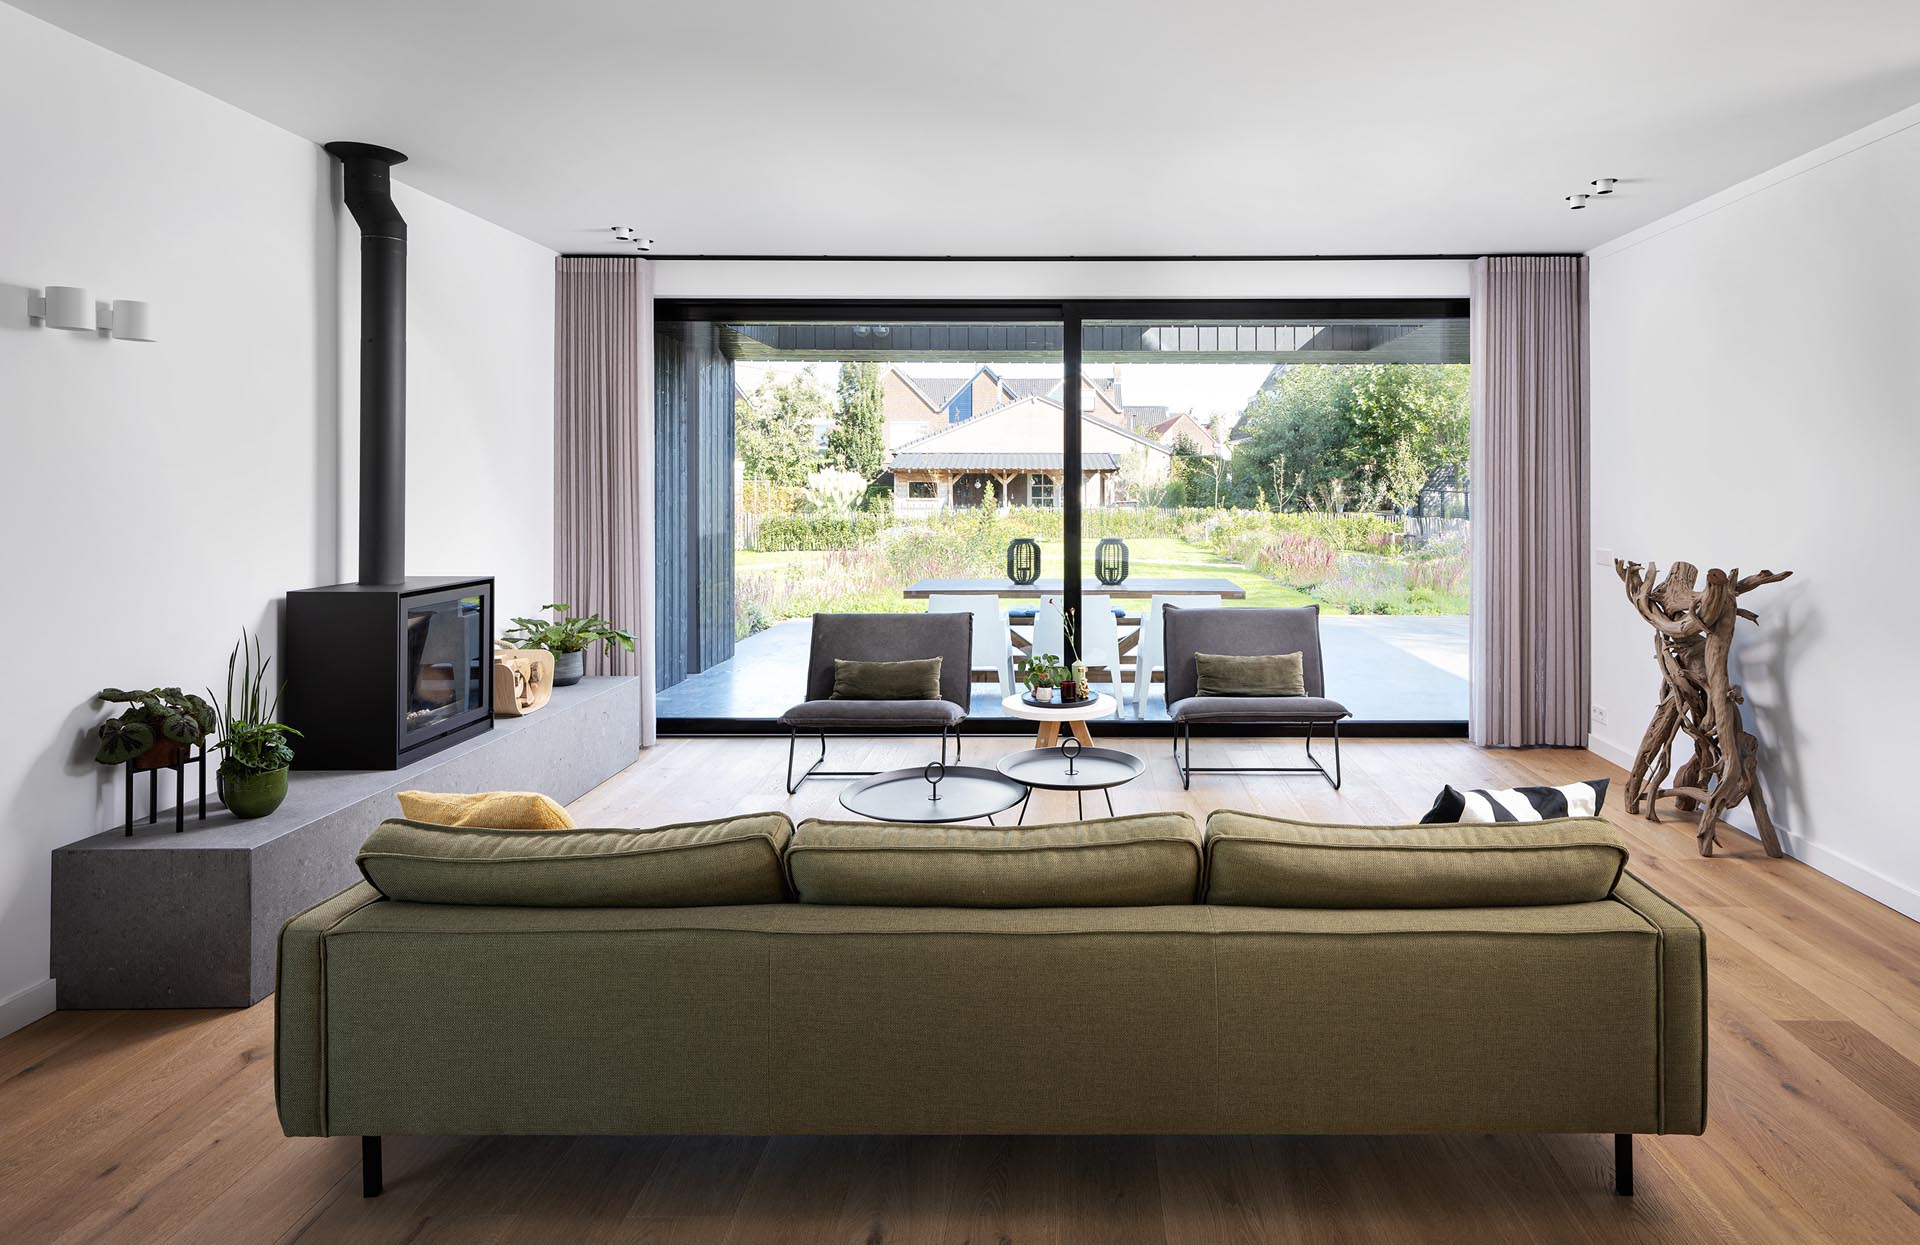 Inside a modern home, the furnishings have been kept minimal, while large sliding doors open the living room to an outdoor patio that's been set up for alfresco dining.